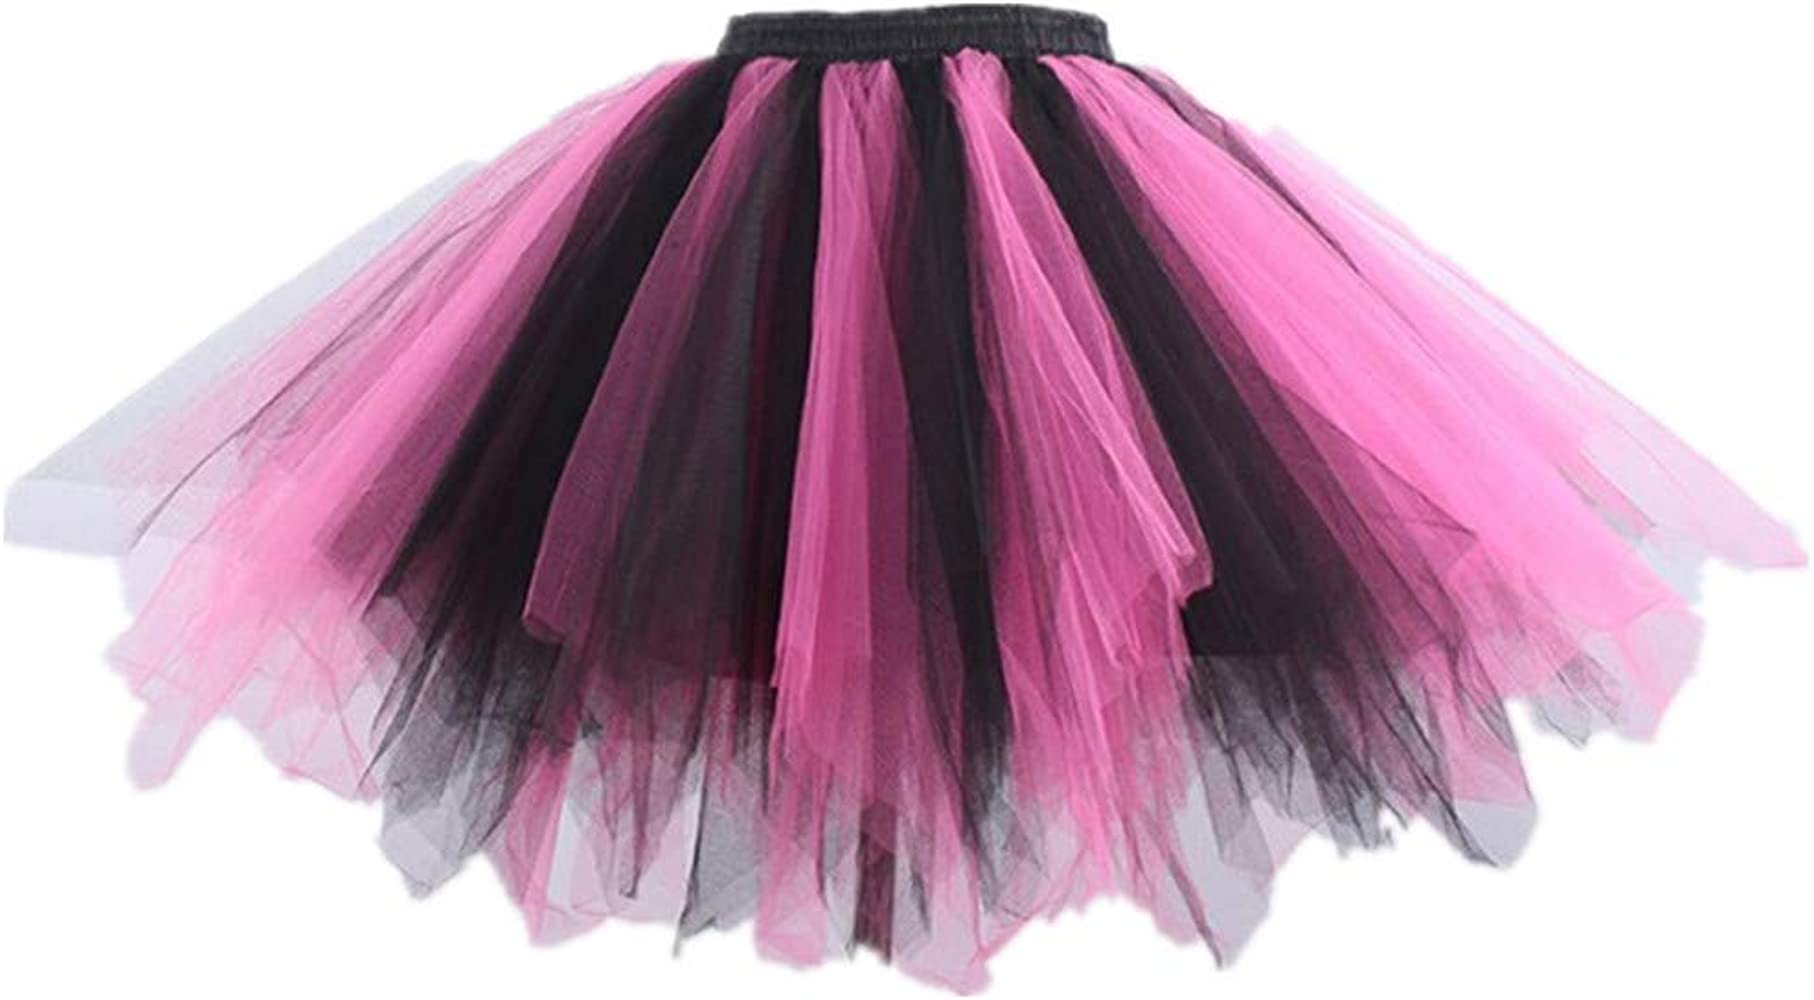 Ladies Fancy Halloween 3 Layer Black Purple TuTu Skirt Womens Party Wear Skirt